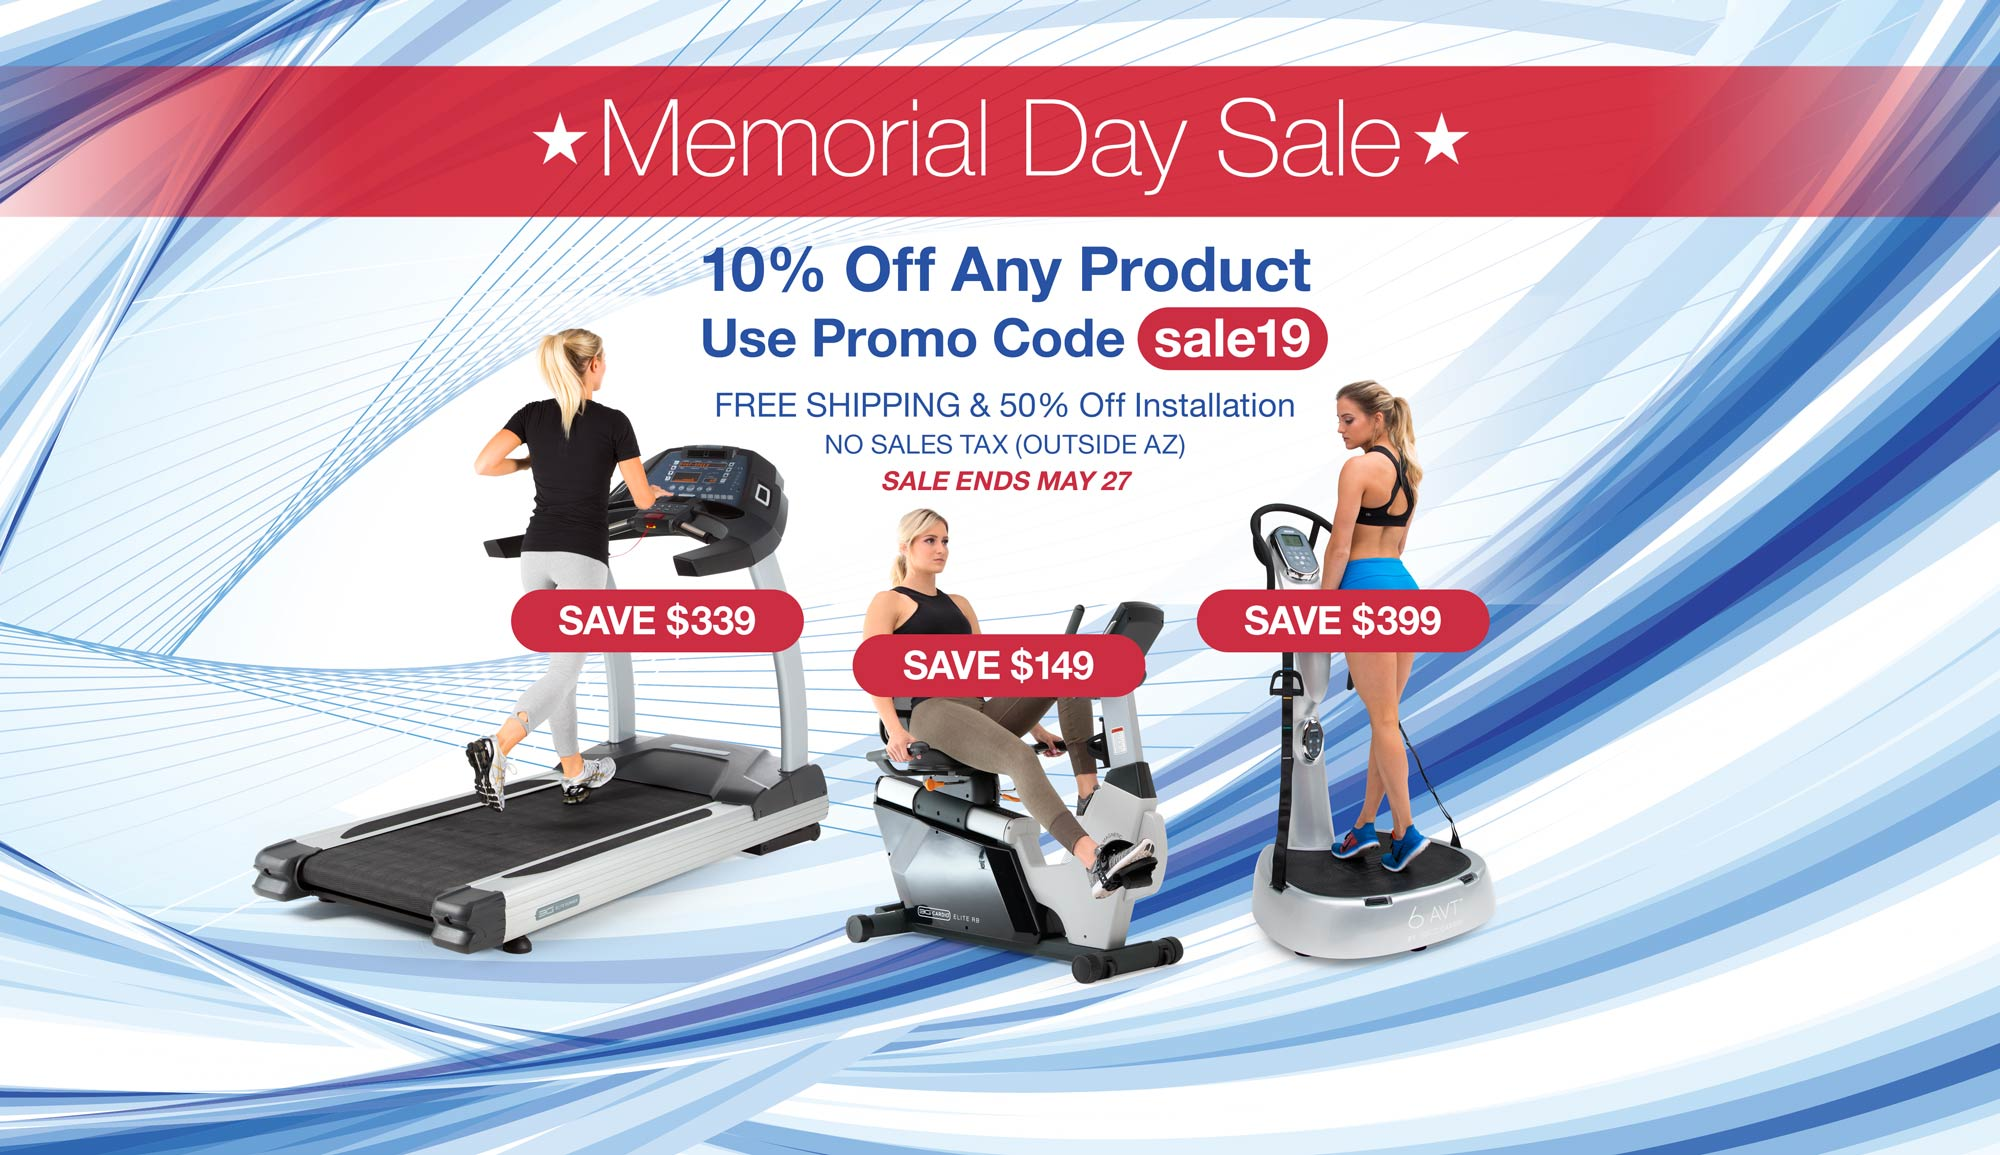 Memorial Day Sale 2019 - Save 10% Off All Products